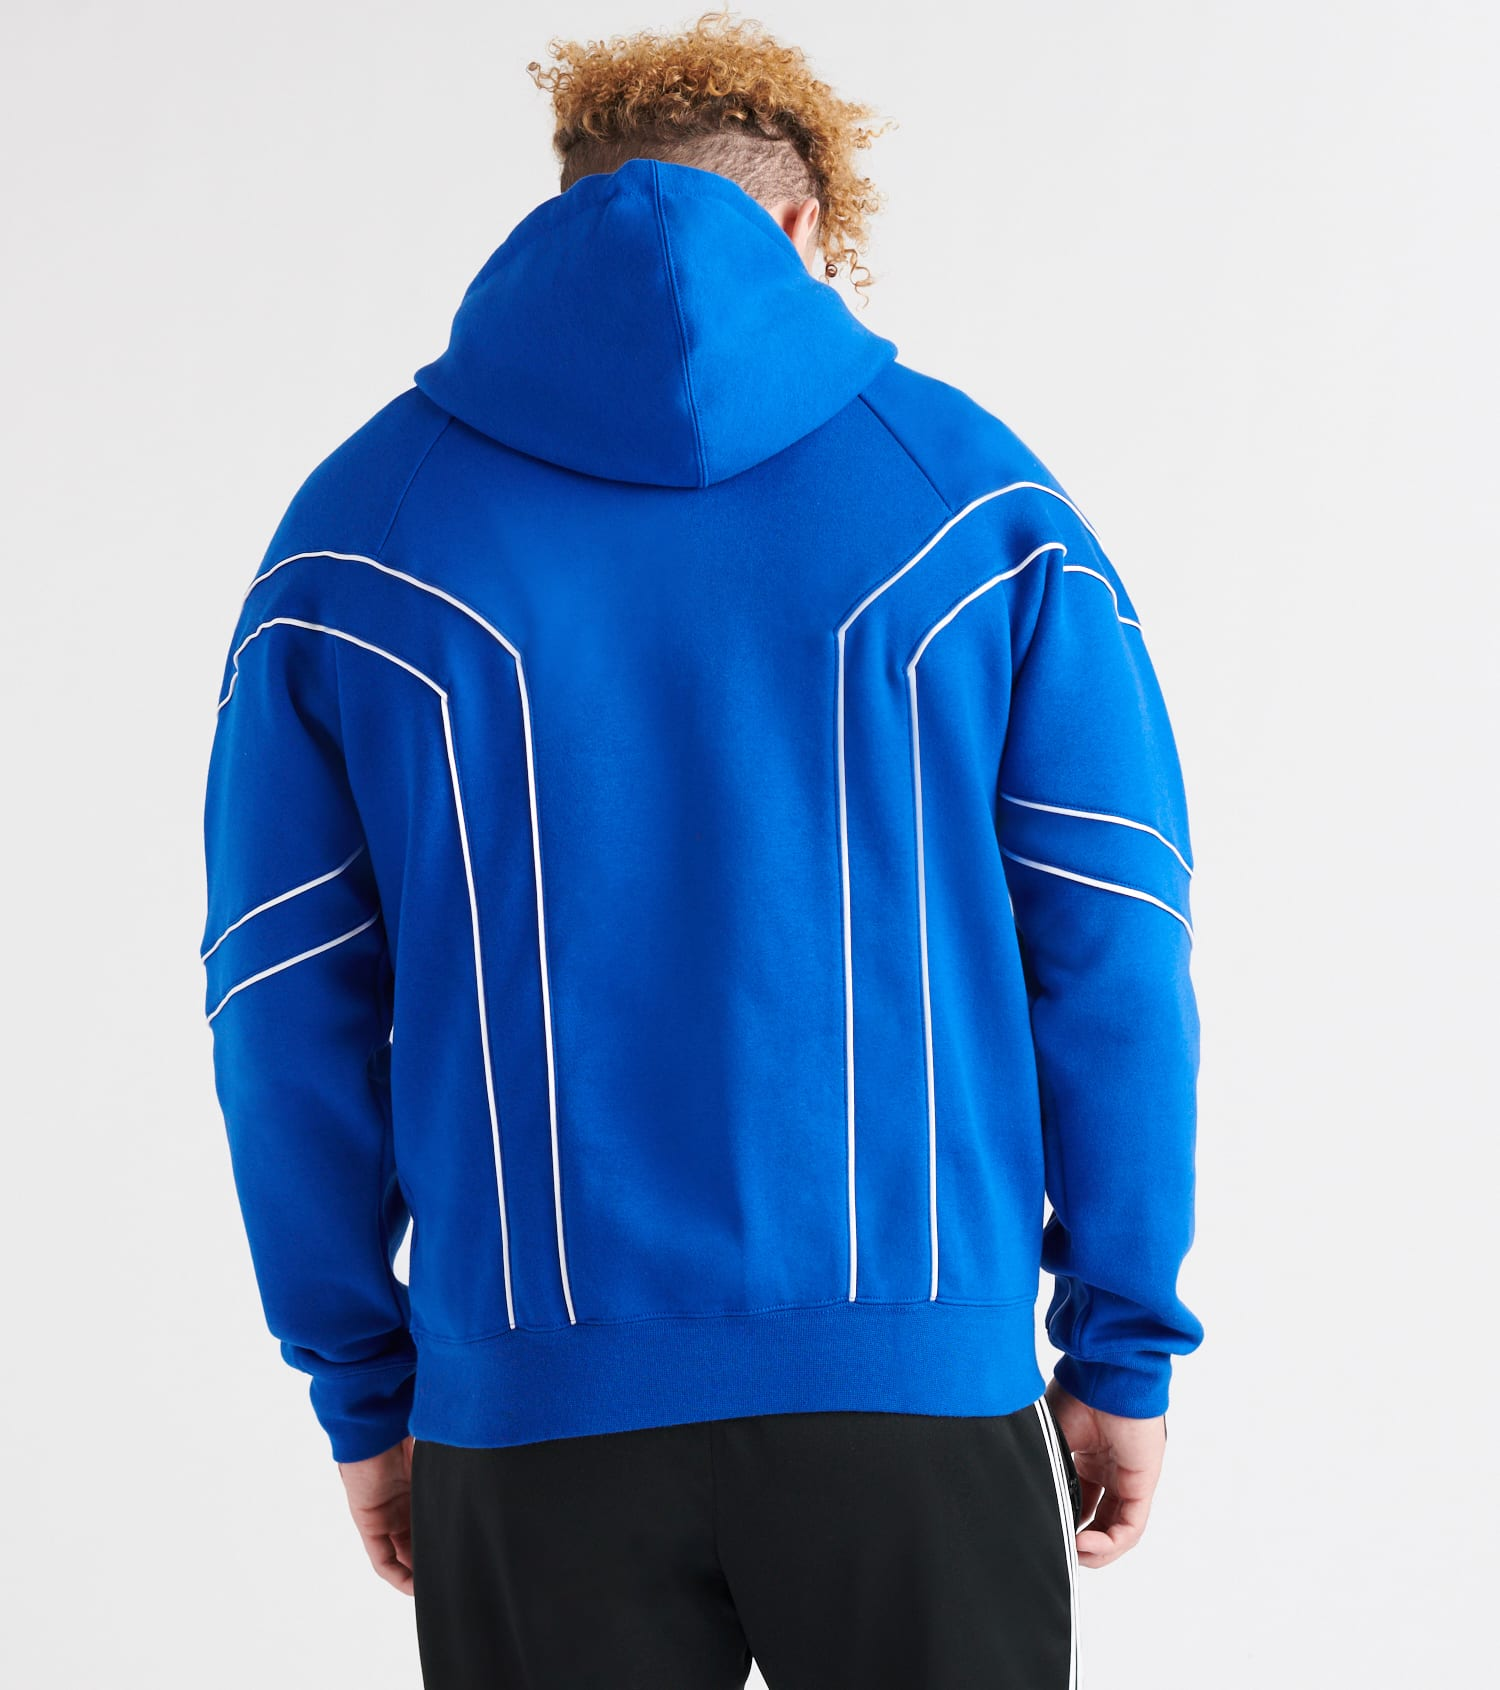 NEW ADIDAS ROYAL COLLEGIATE BLUE EQT OUTLINE FLEECE HOODIE SWEATER SWEATSHIRT